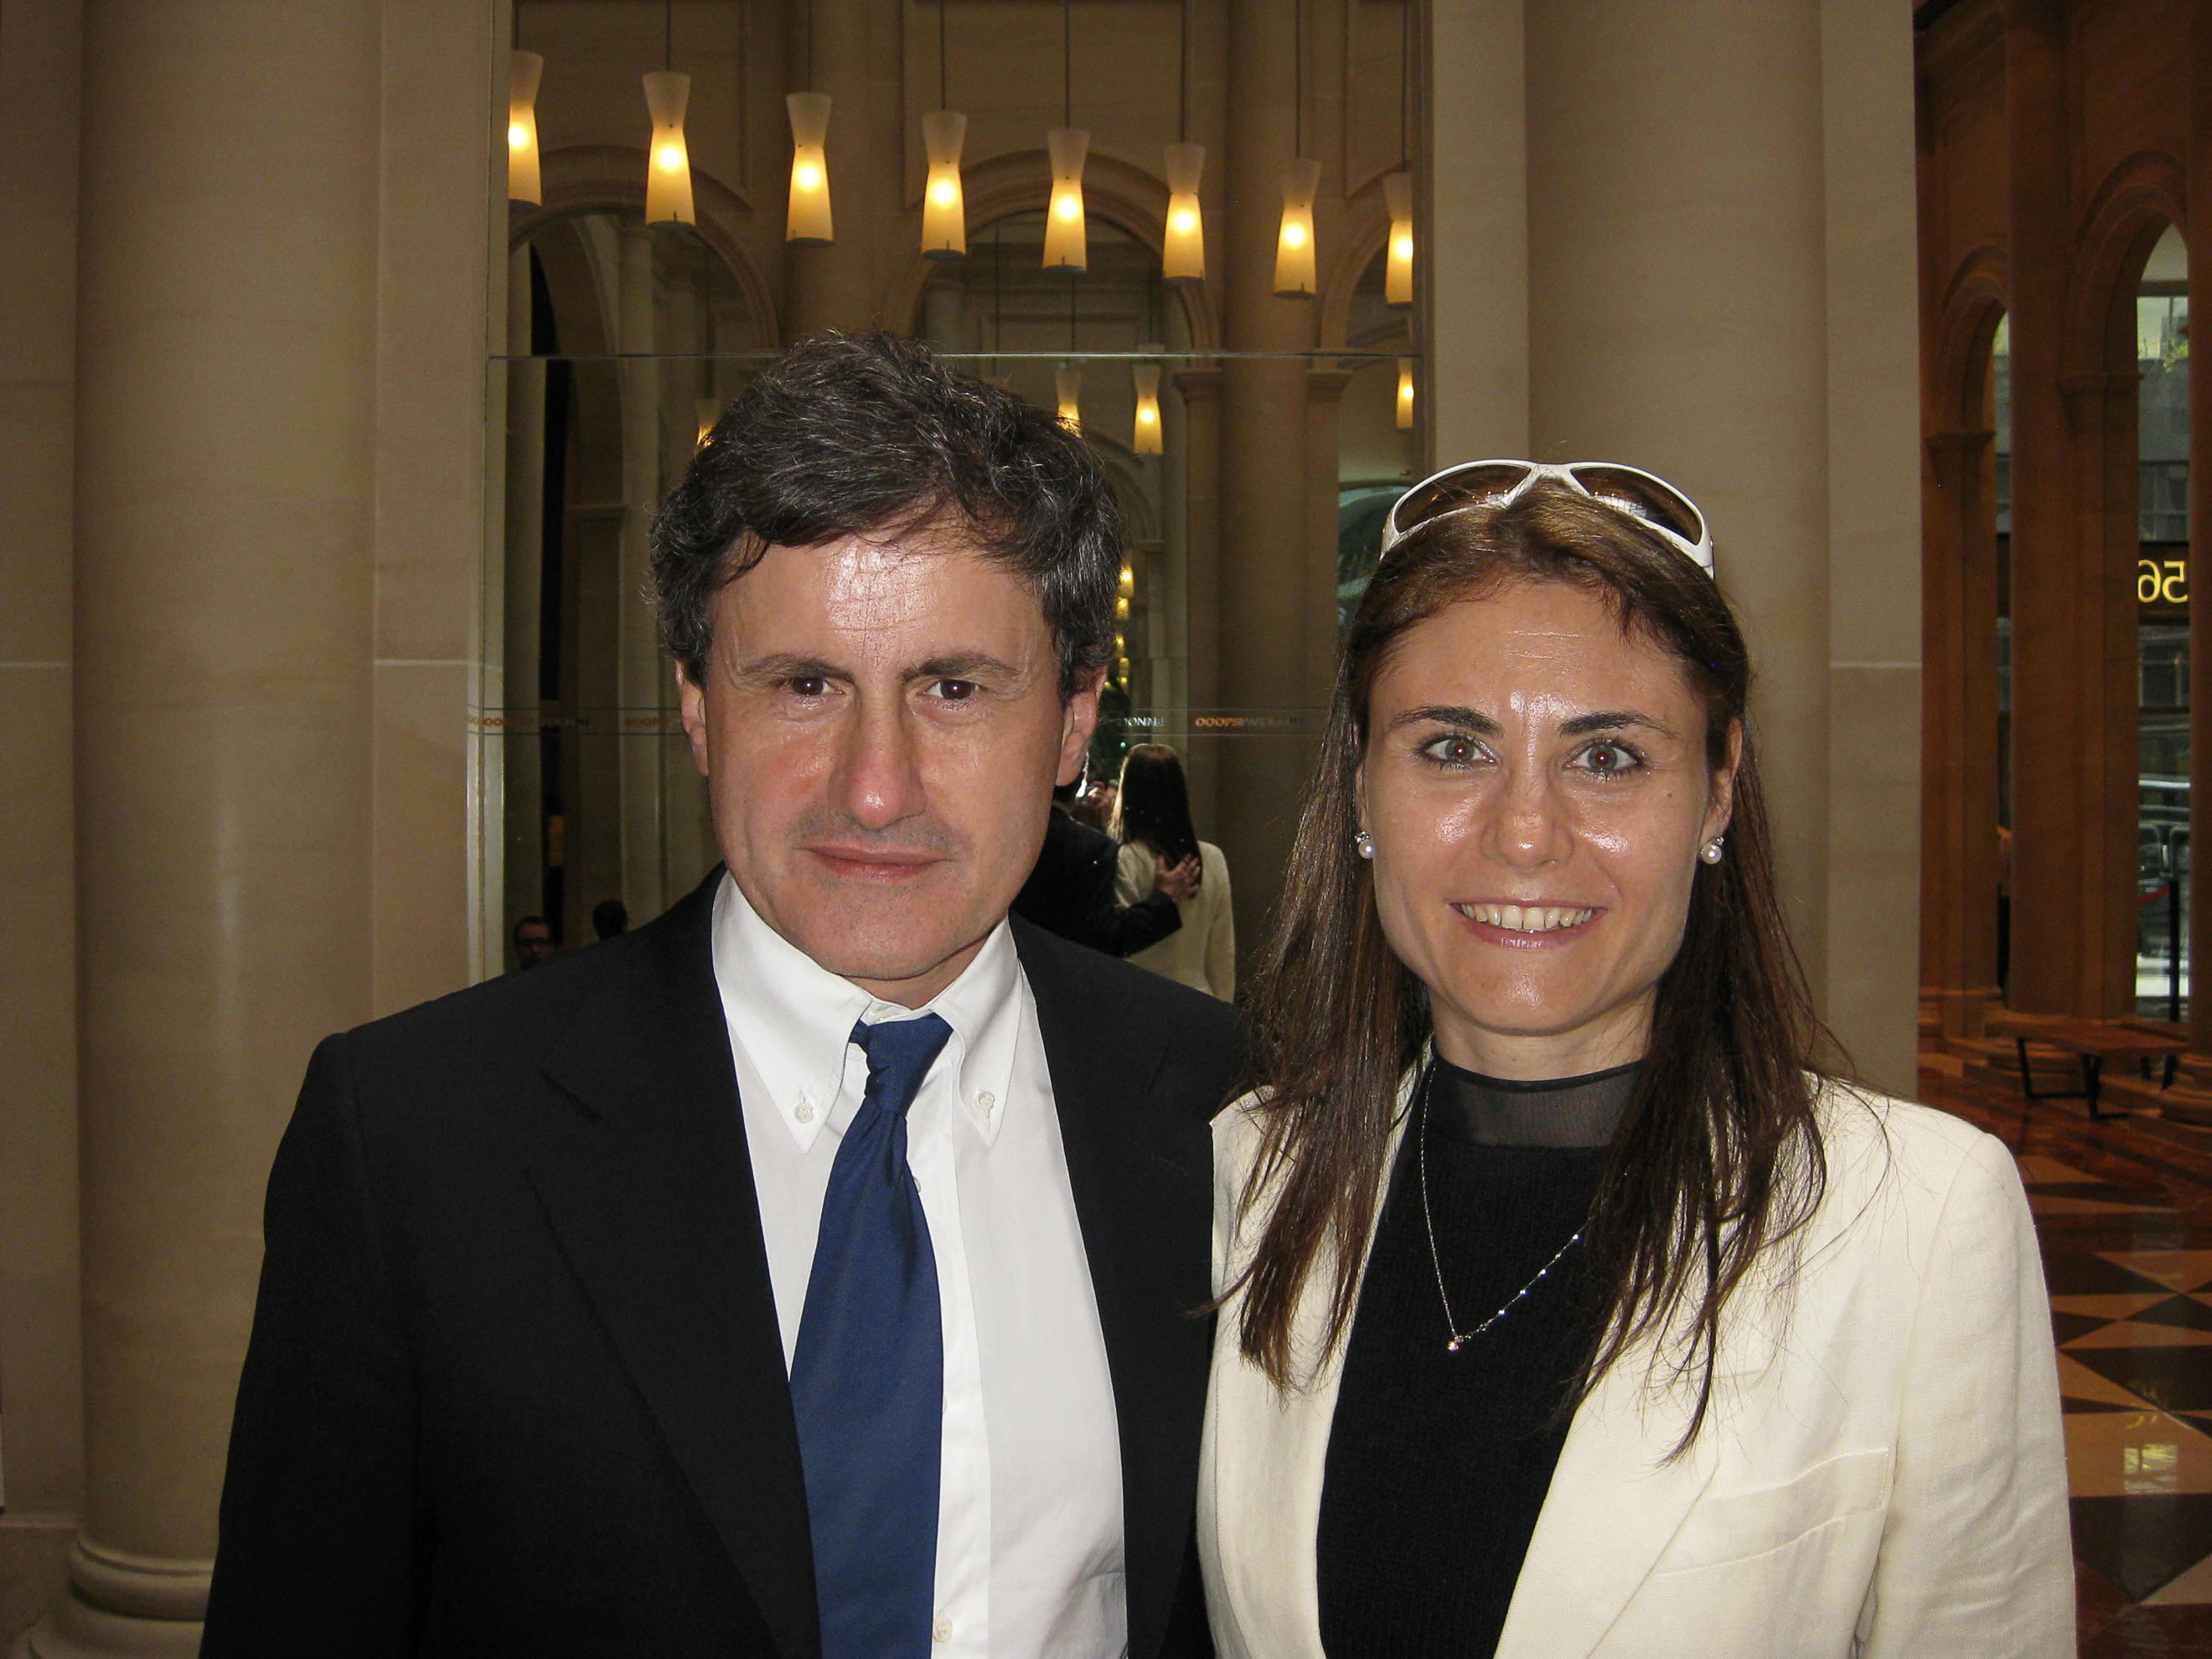 with Gianni Alemanno